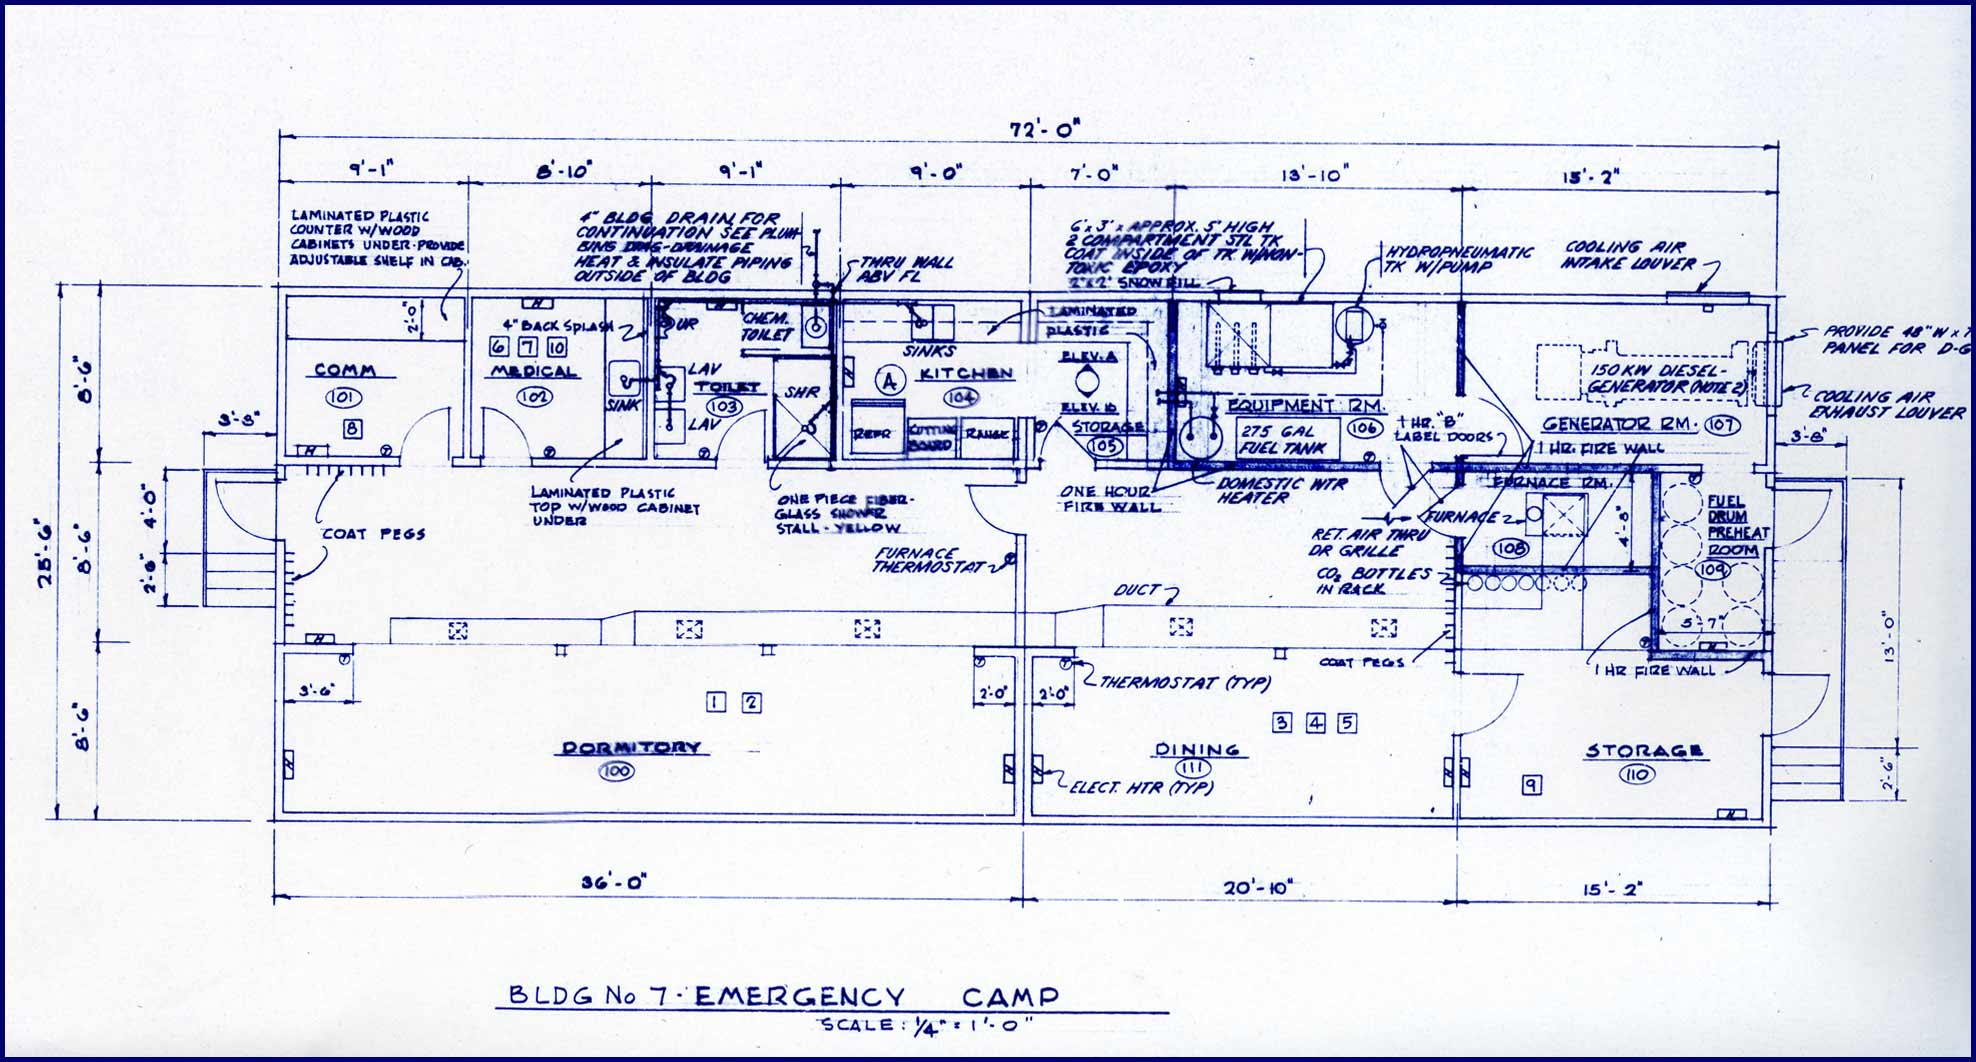 Building Demolition Drawing : Building drawing plan